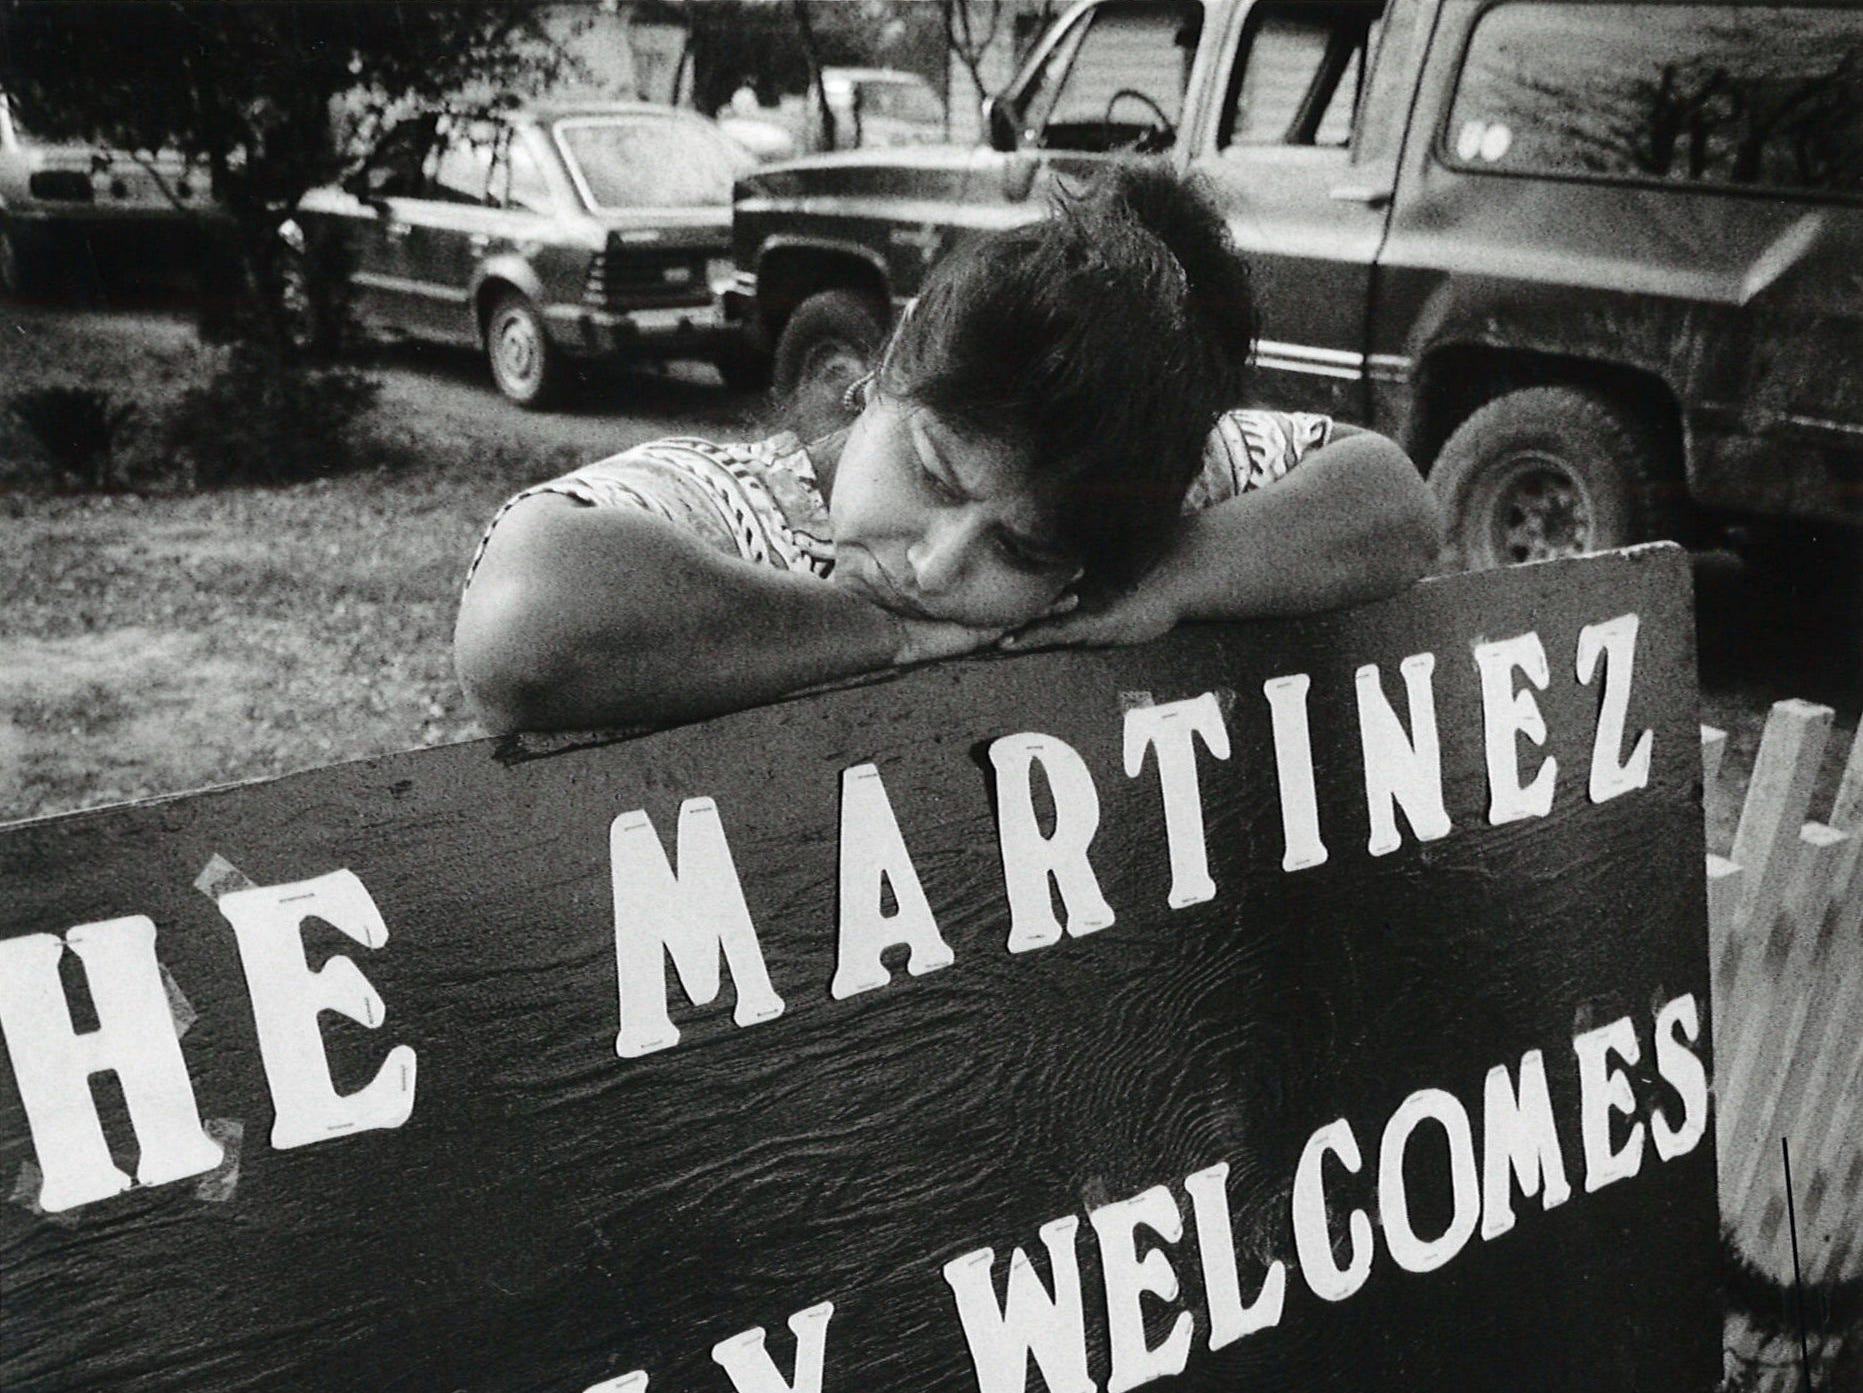 Connie Guerra waits to greet President George Bush on Dec. 29, 1992 at the home of Rachel and Rufino Martinez of Berclair, Texas where he usually stops to talk to the residents during his annual quail hunts at the Lazy F Ranch. Guerra and six others waited more than three hours, but the president never showed up.